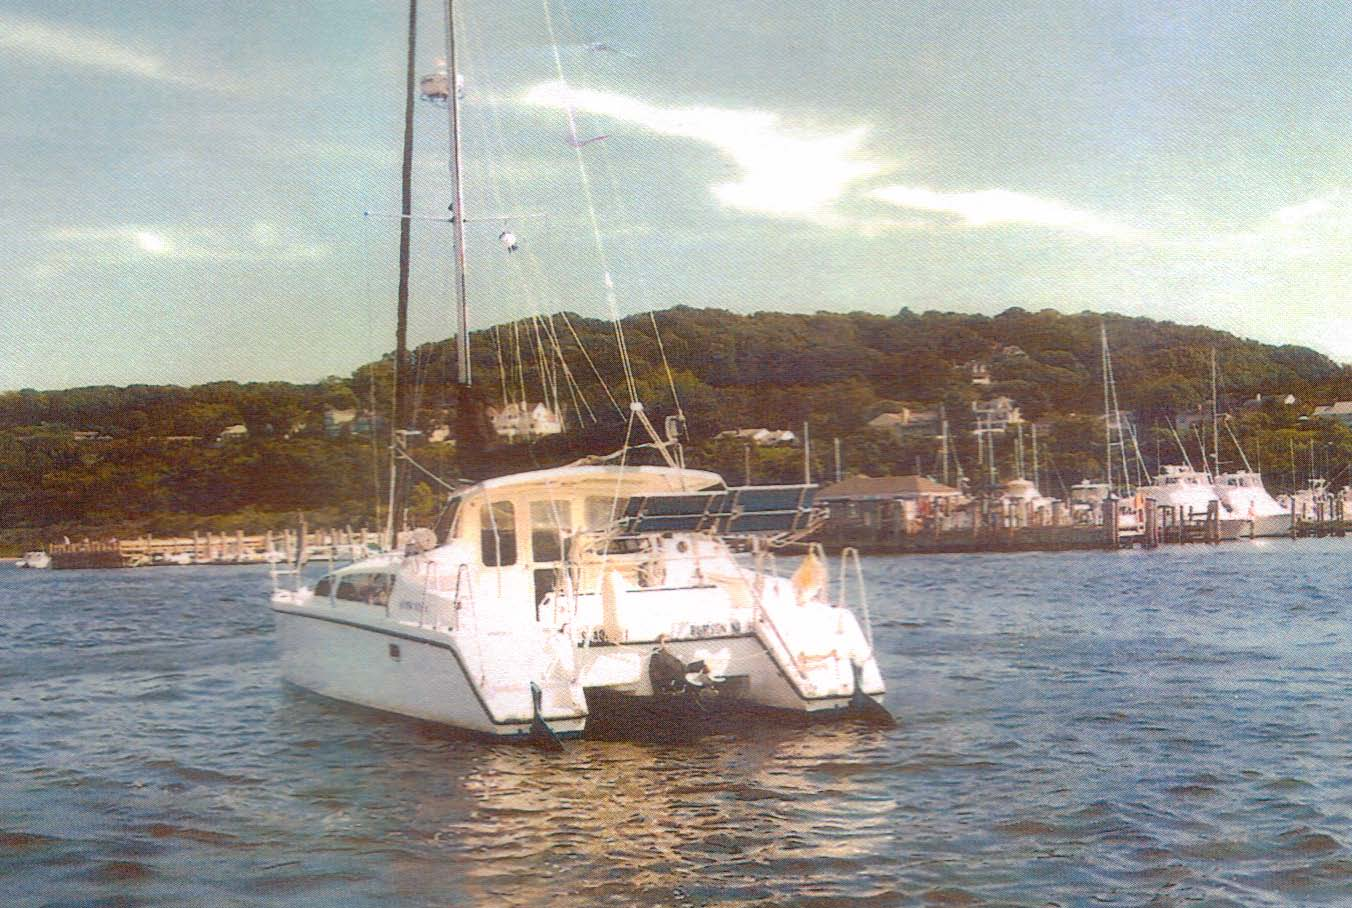 Used Sail Catamaran for Sale 2001 Gemini 105Mc Boat Highlights